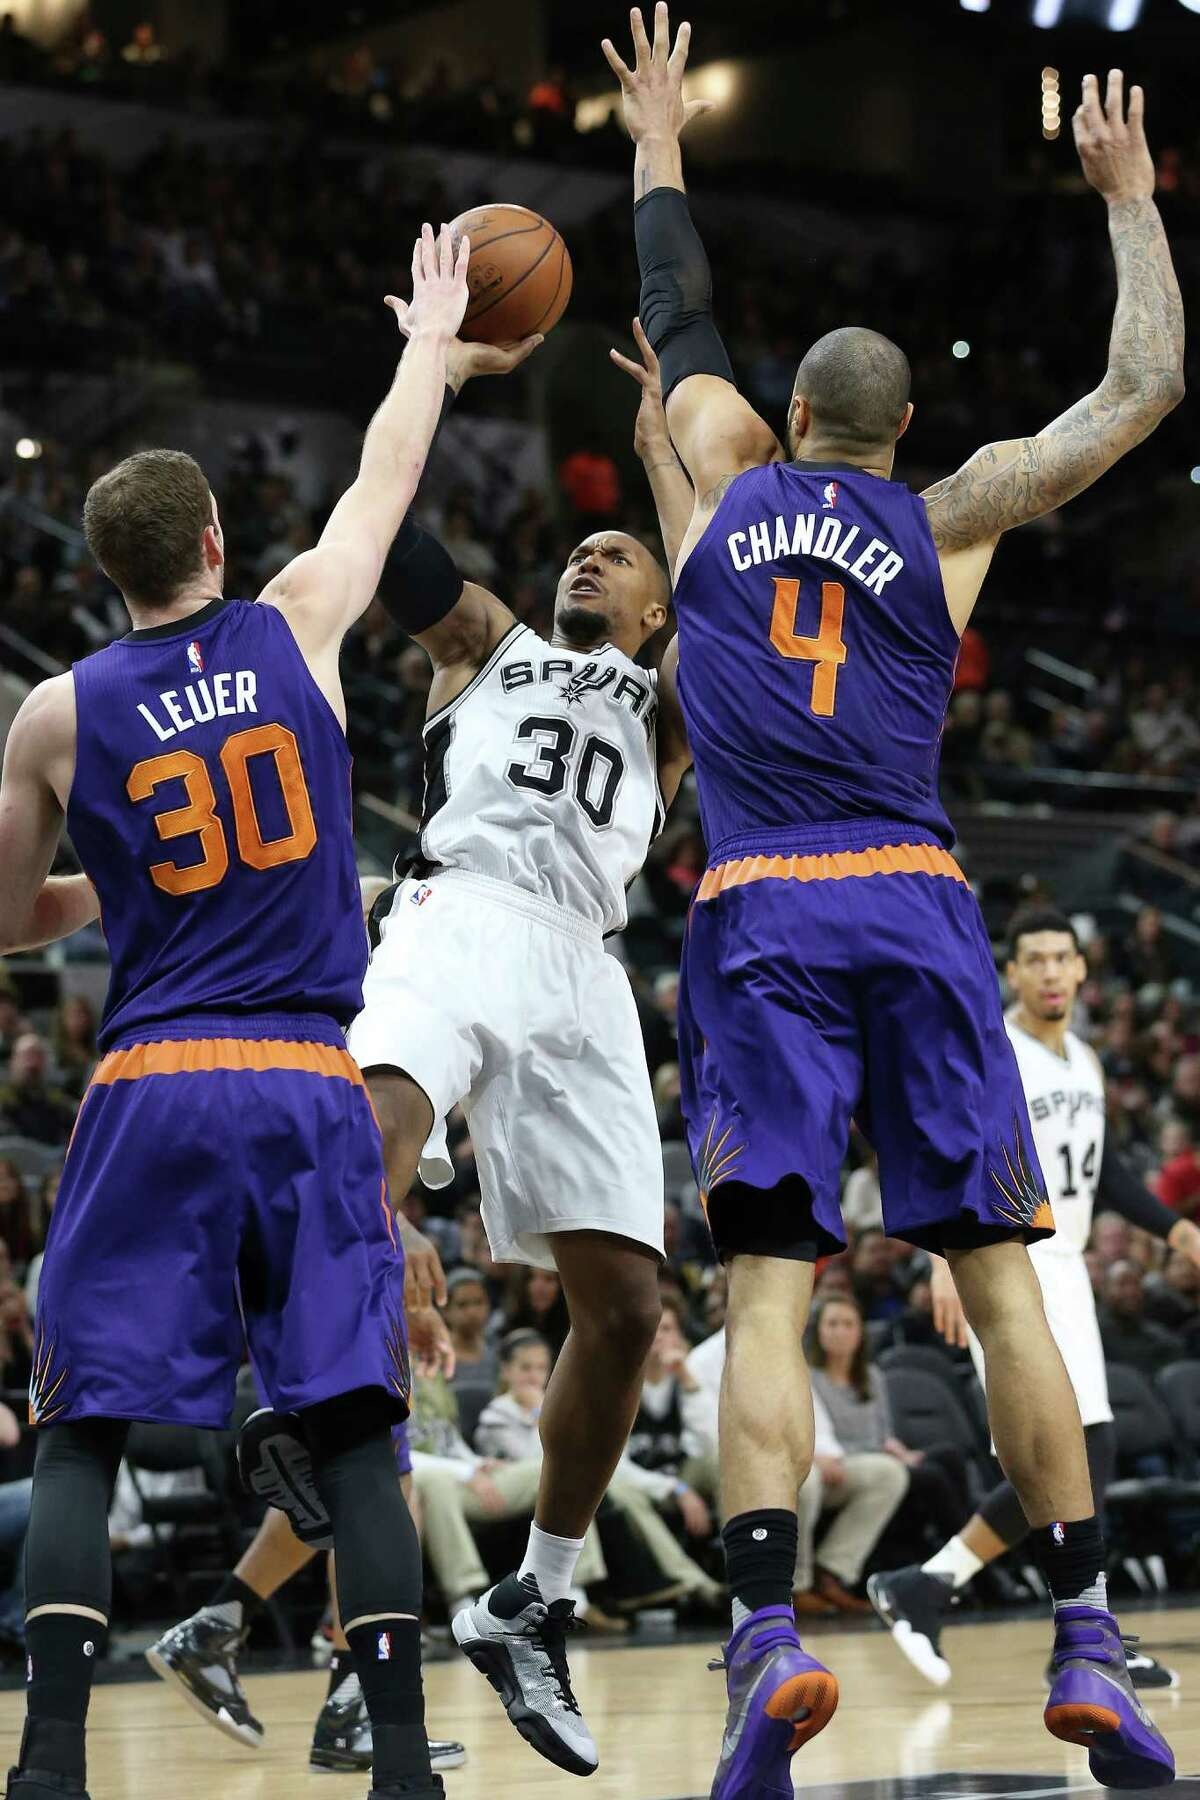 David West fades back for a shot against Jon Leuer and Tyson Chandler as the Spurs host the Suns at the AT&T Center on Dec. 30, 2015.